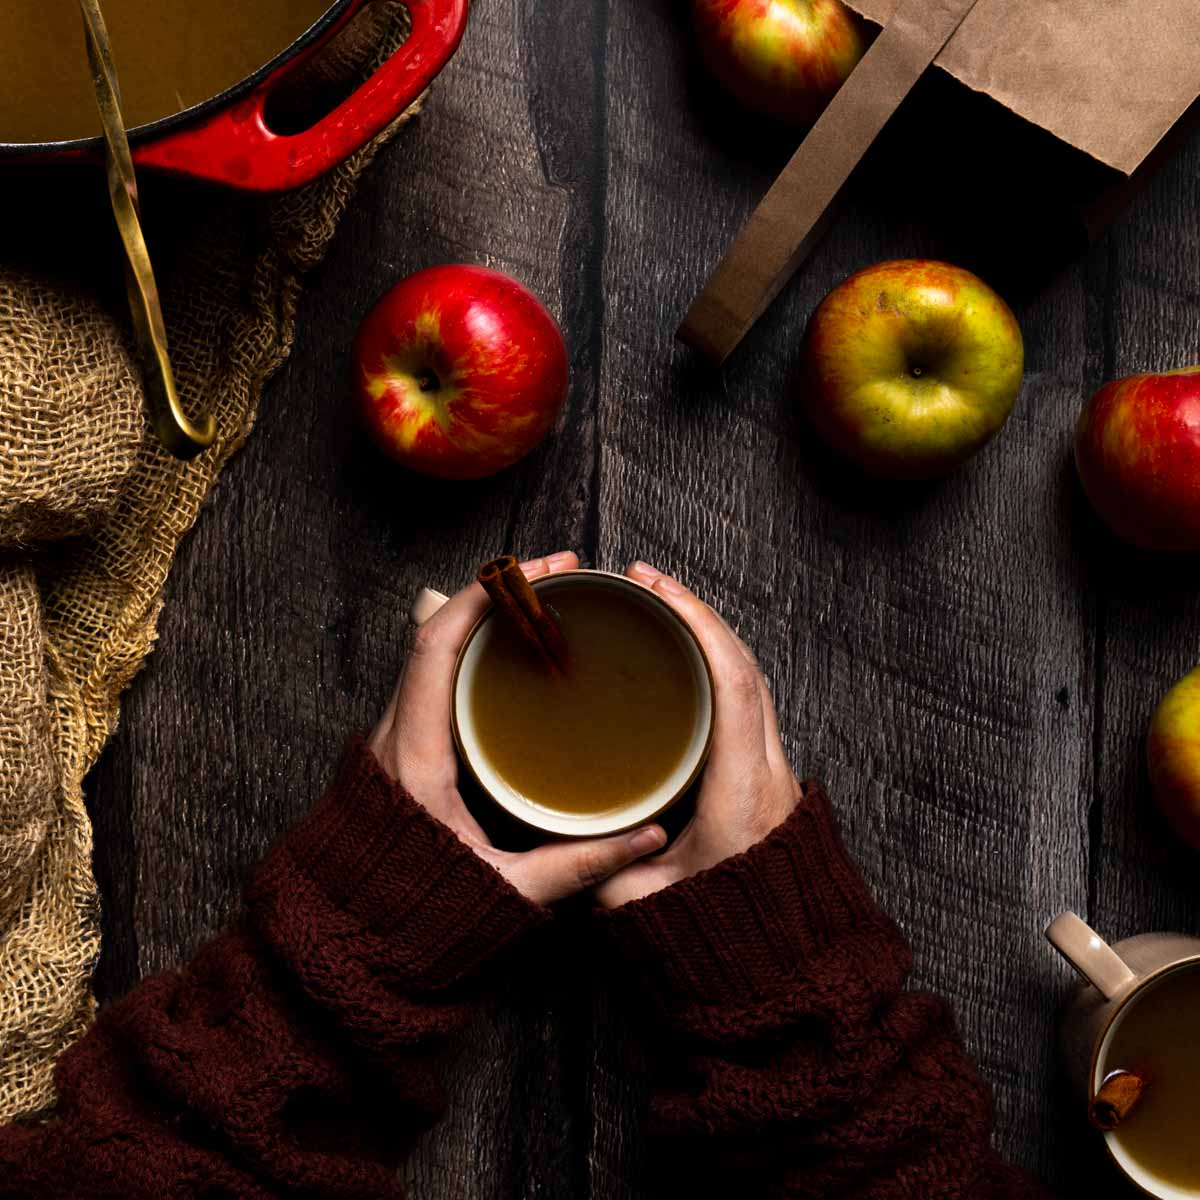 Two hands cradling a mug of homemade spiced cider next to apples and burlap